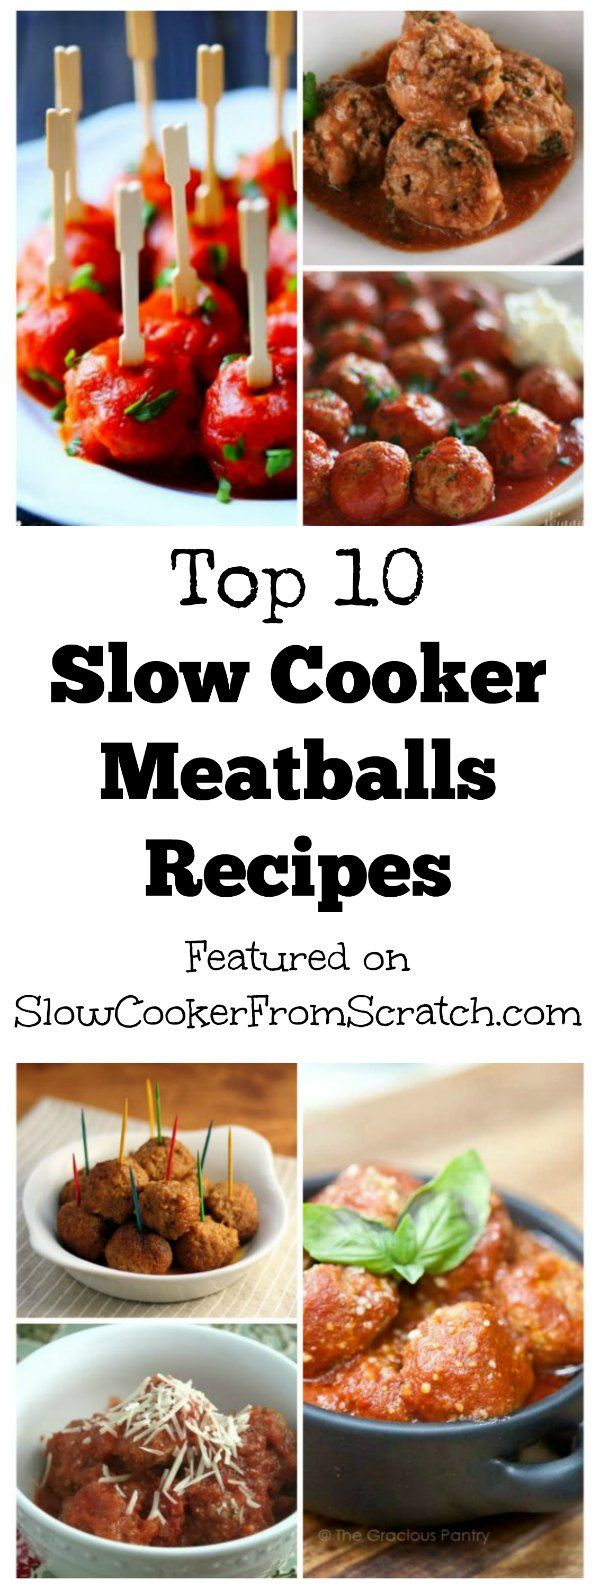 Everyone loves meatballs in the slow cooker, and here are the Top Ten Slow Cooker Meatballs Recipes from Slow Cooker from Scratch!  [found on SlowCookerFromScratch.com]